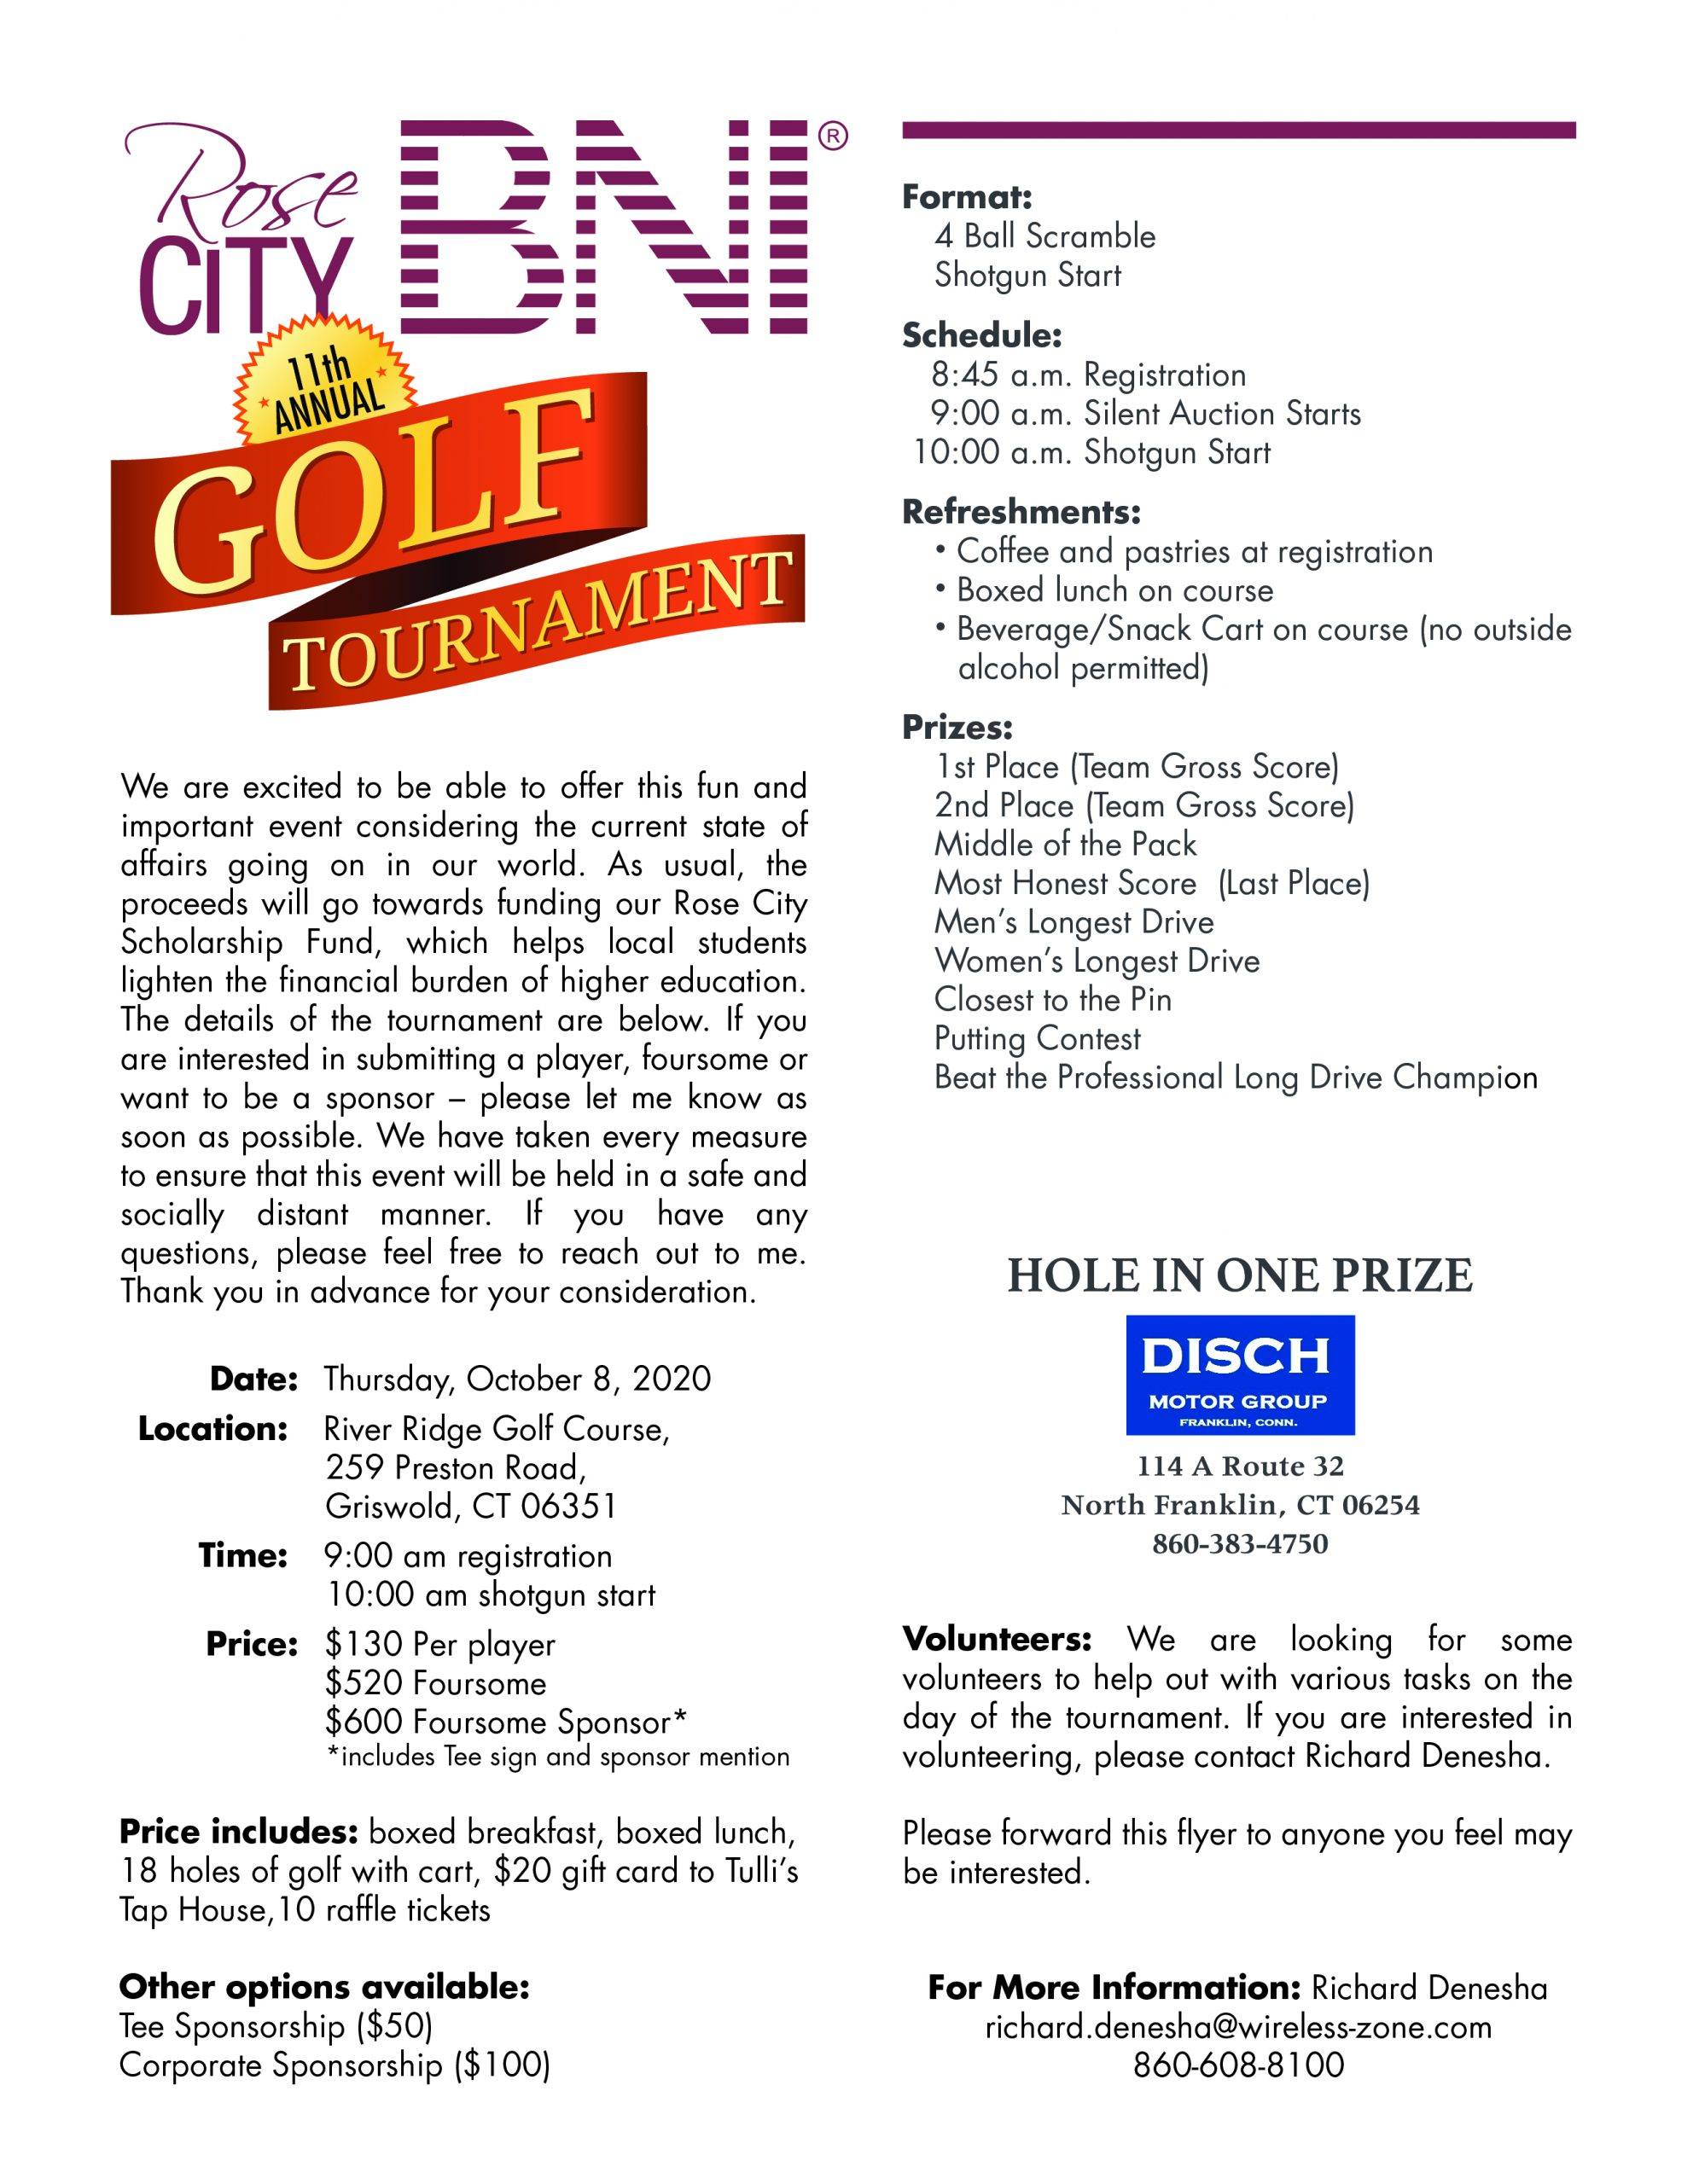 Rose City BNI 11th Annual Golf Tournament October 8, 2020